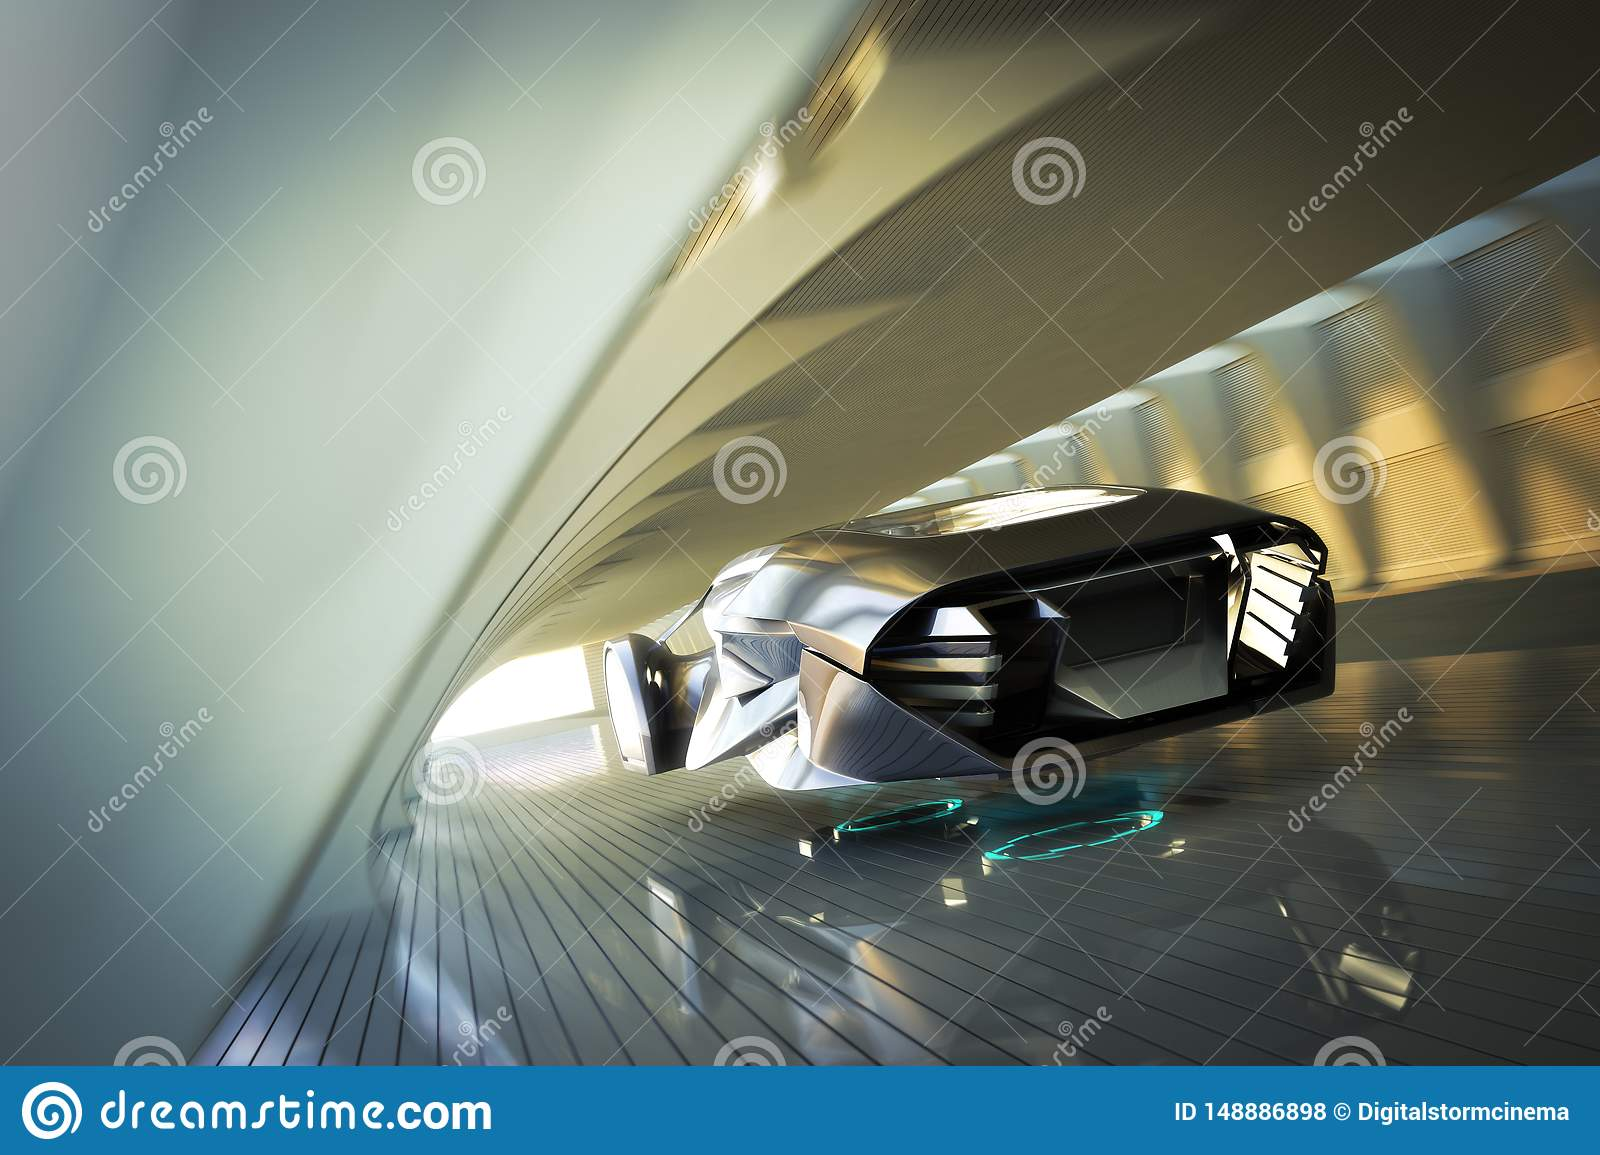 Car Interior Luxury Stock Illustrations 1 198 Car Interior Luxury Stock Illustrations Vectors Clipart Dreamstime